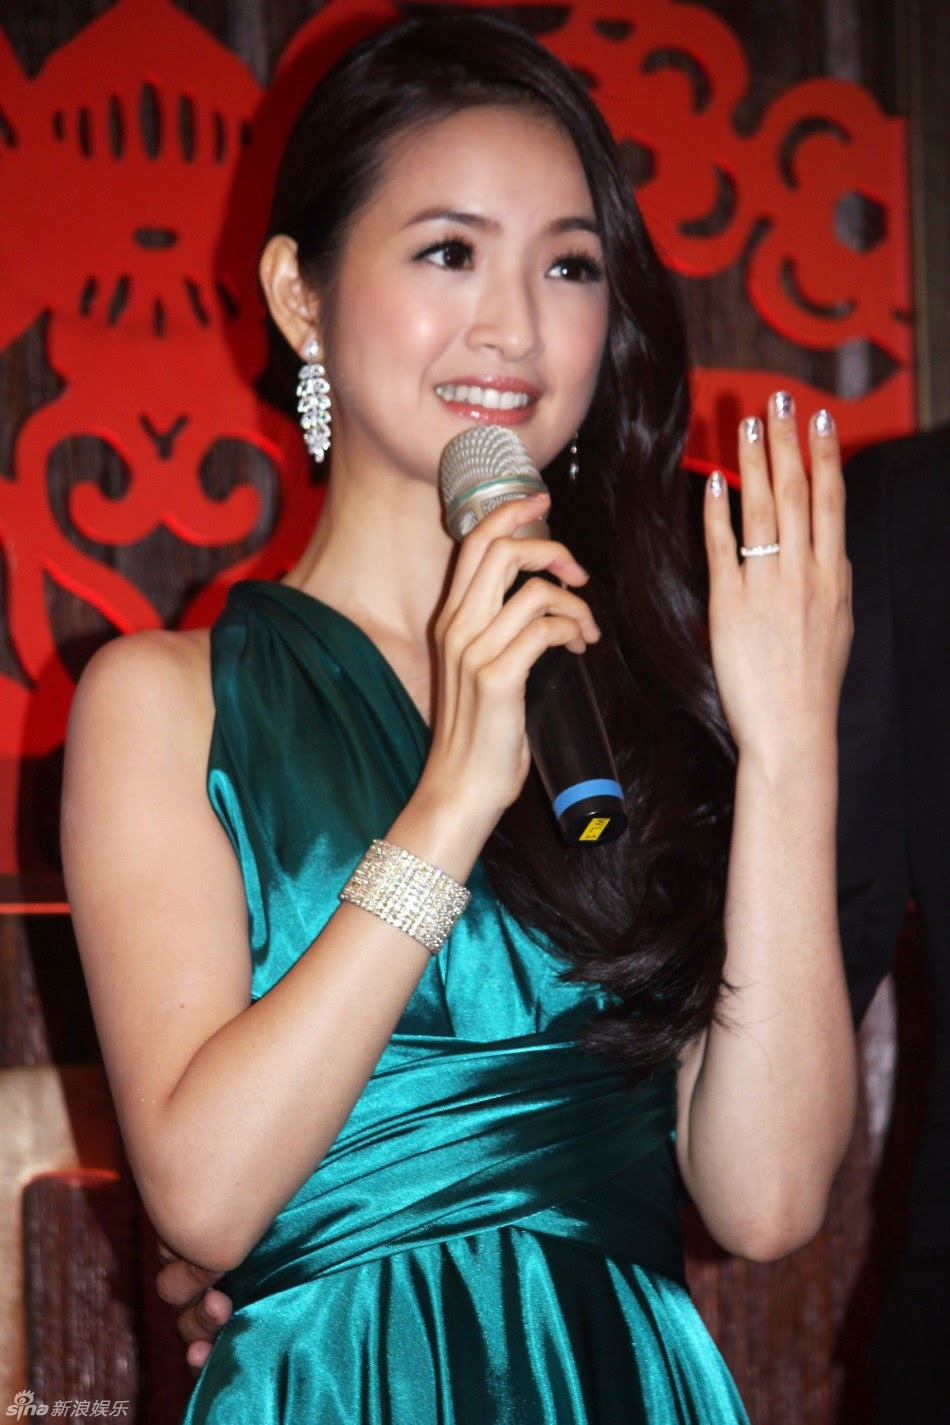 ariel lin throws engagement banquet on 32nd birthday